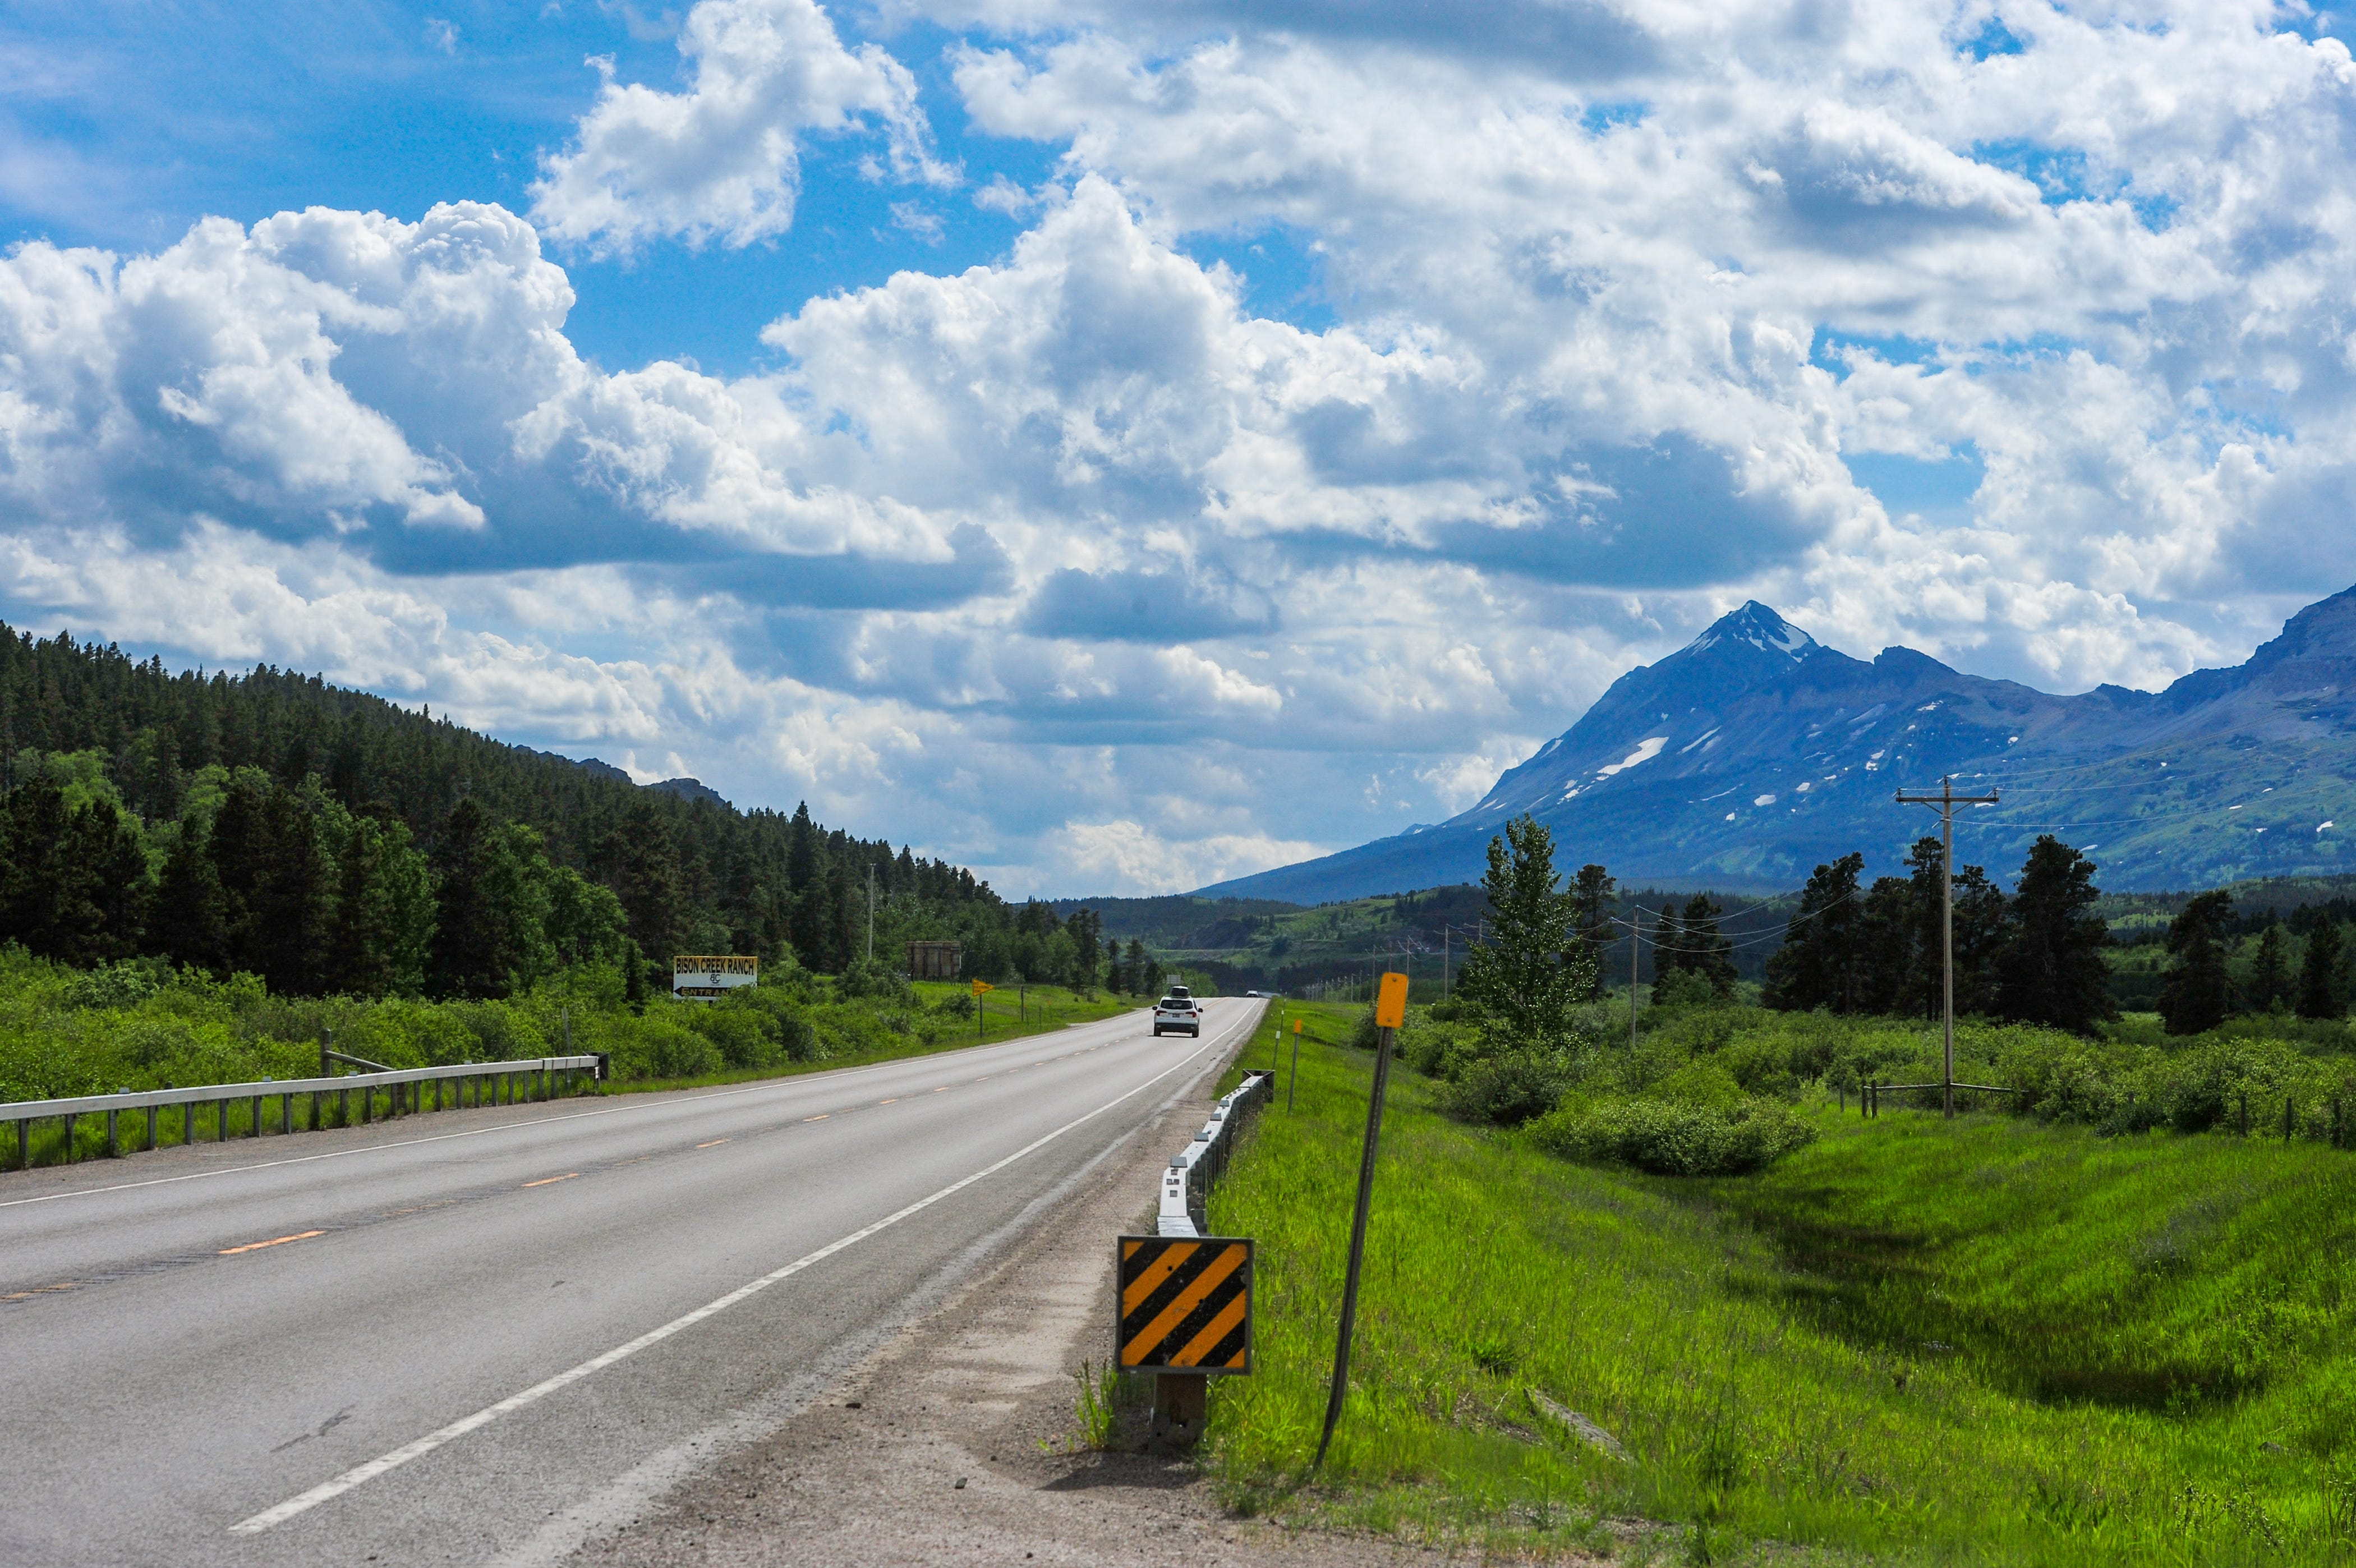 U.S. Highway 2 travels west along the southern border of Glacier National Park connecting the two sides of the park.   A major travel route for local and tourist traffic it also serves as a main evacution route during wildfires.